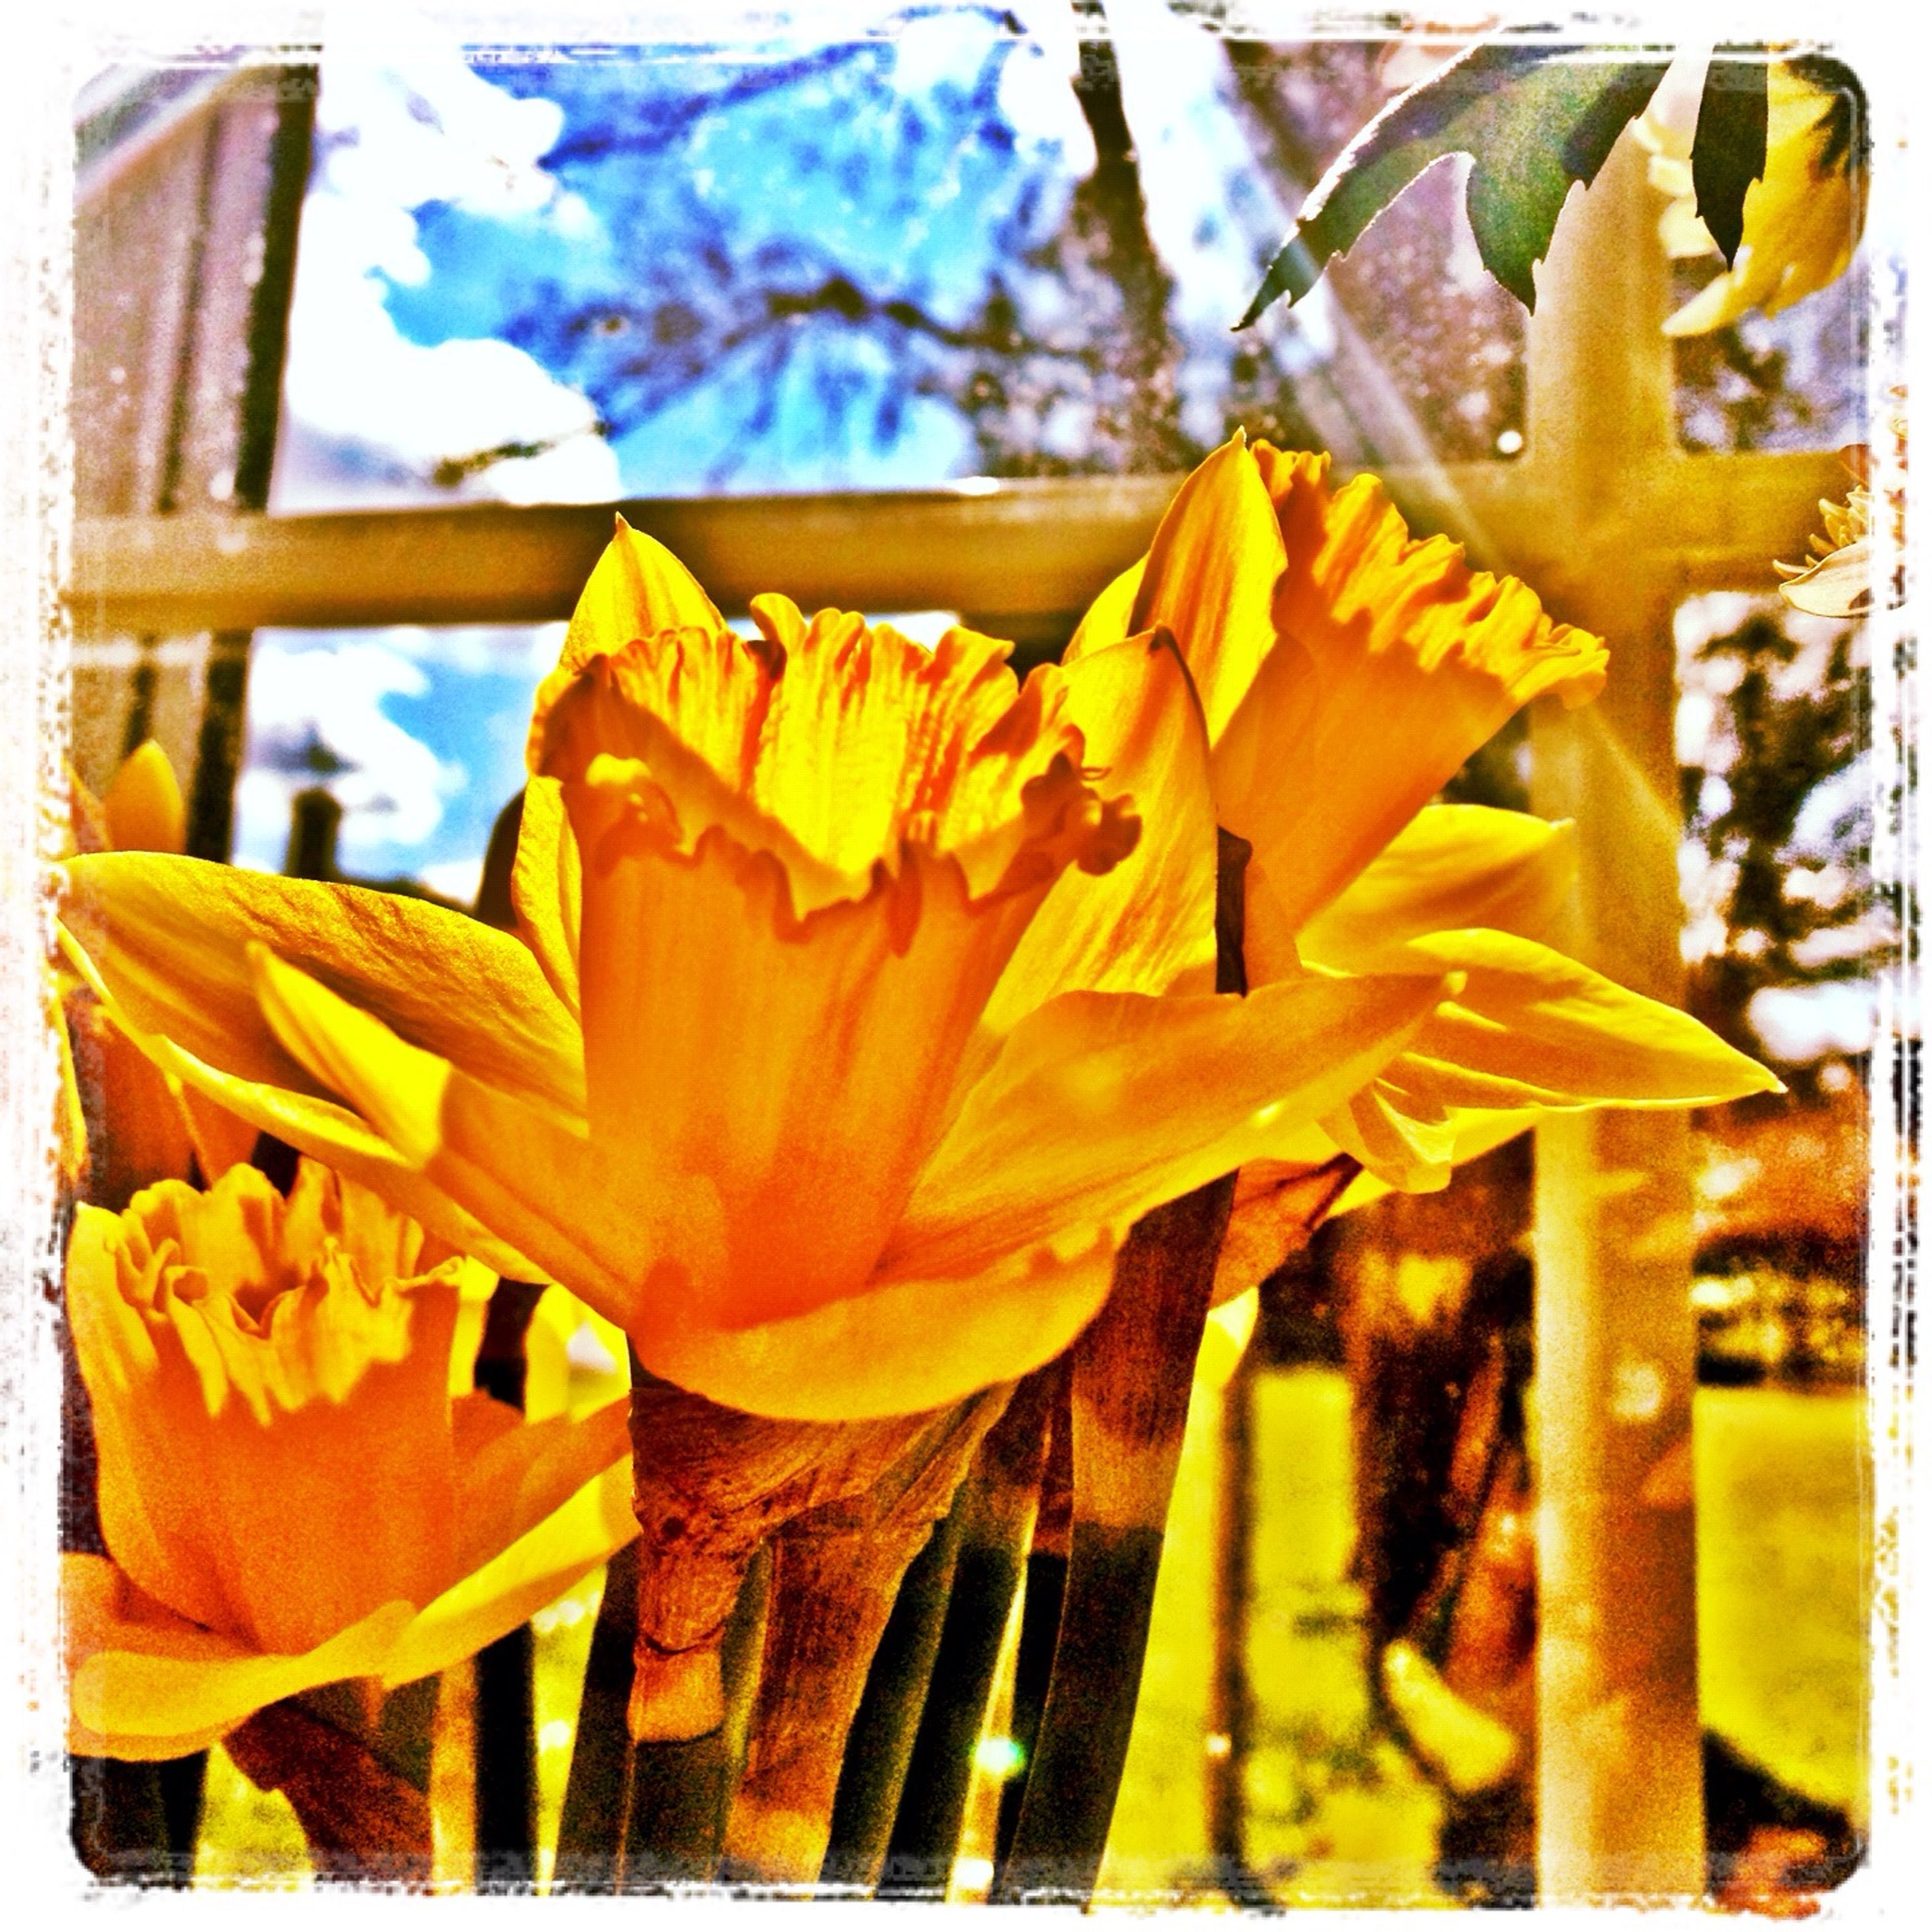 transfer print, auto post production filter, yellow, close-up, freshness, flower, focus on foreground, day, outdoors, petal, no people, selective focus, fragility, orange color, low angle view, multi colored, nature, sunlight, frame